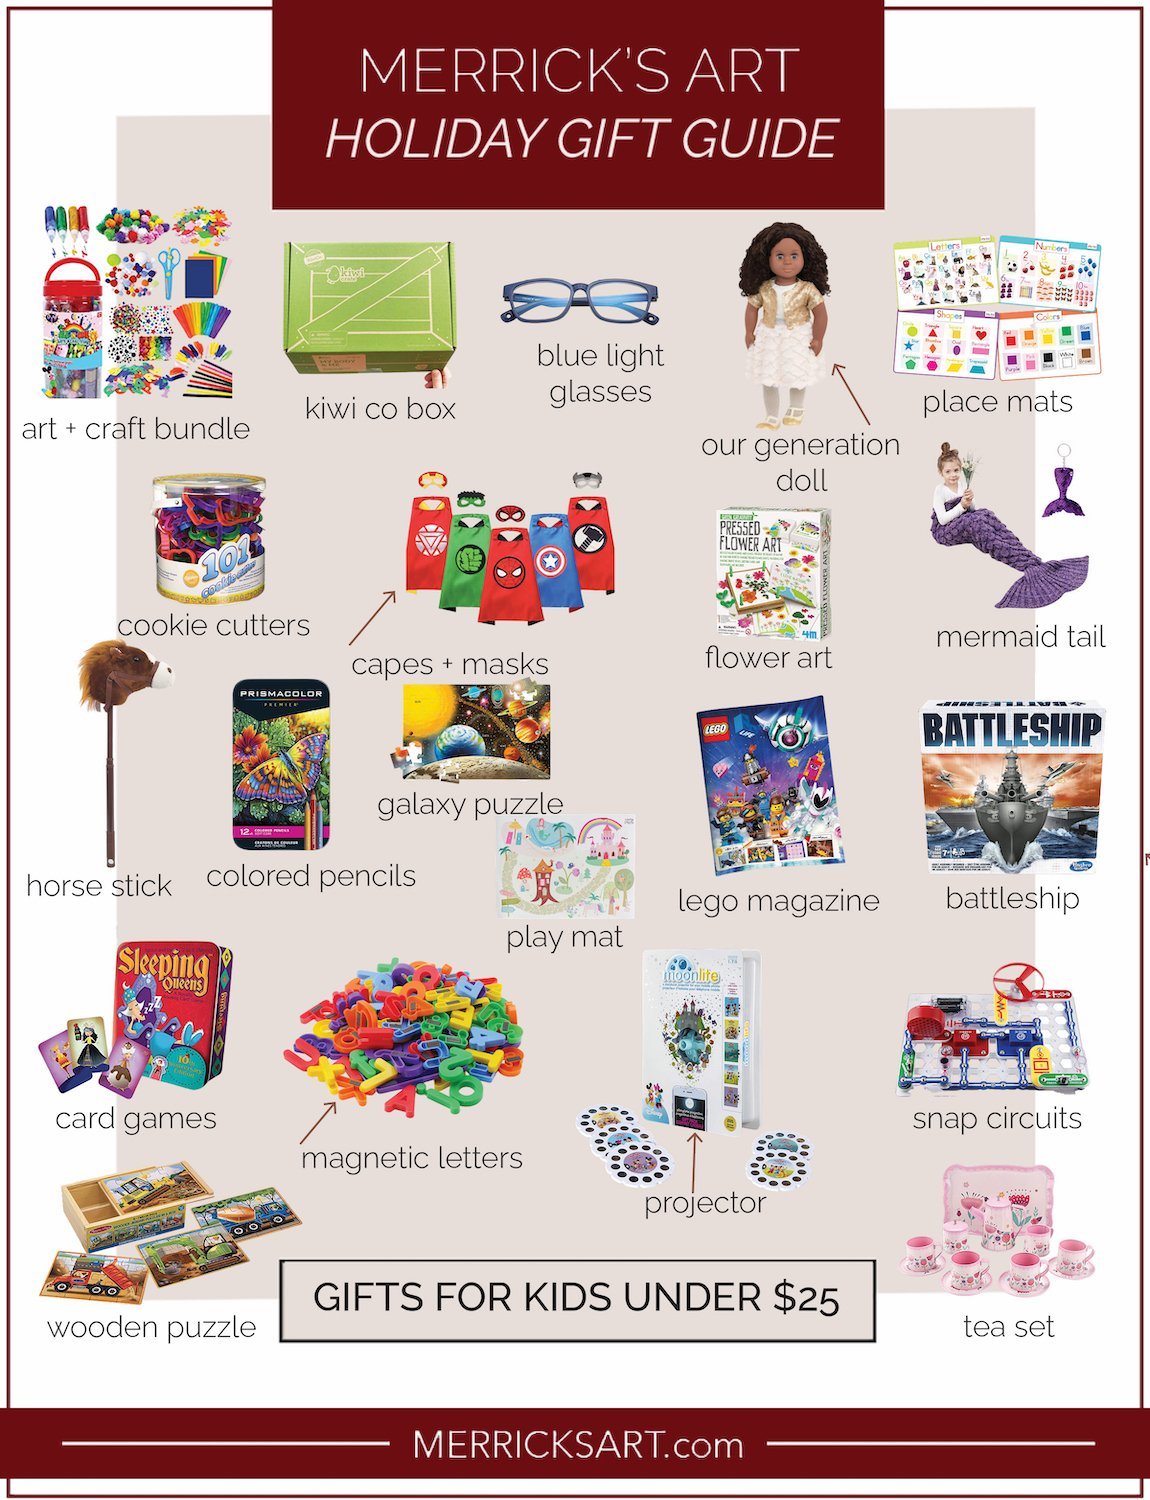 under $25 gifts for kids